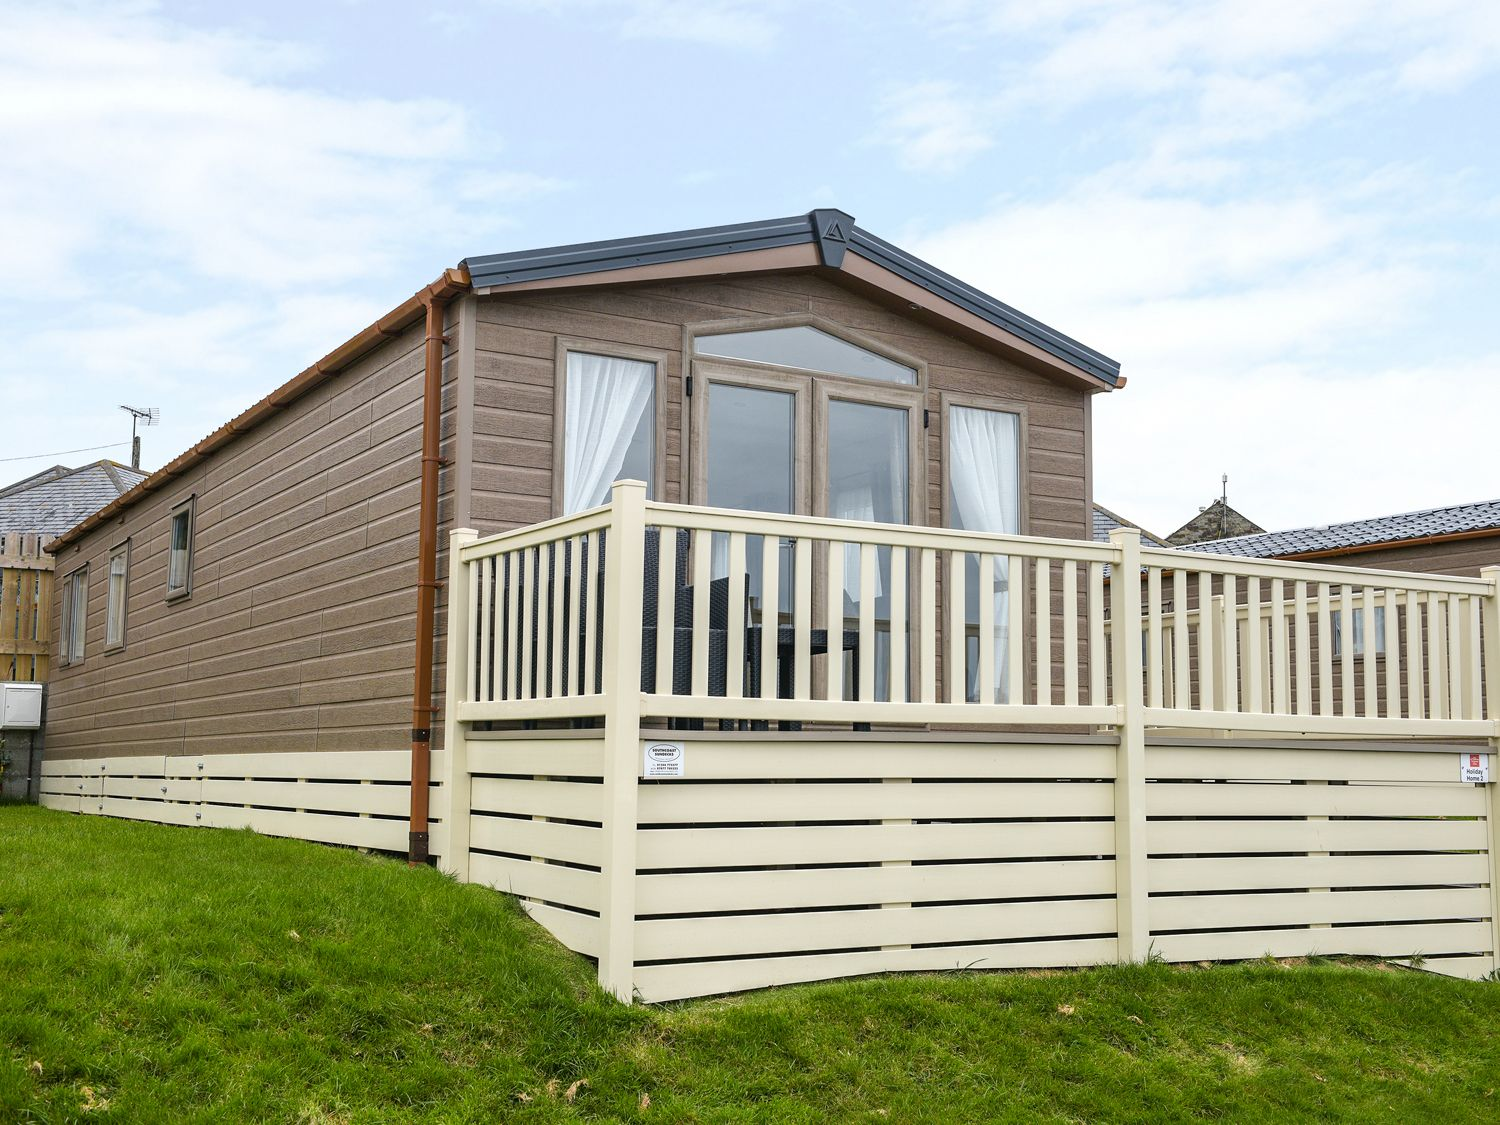 Holiday Home 2 - Cornwall - 962580 - photo 1